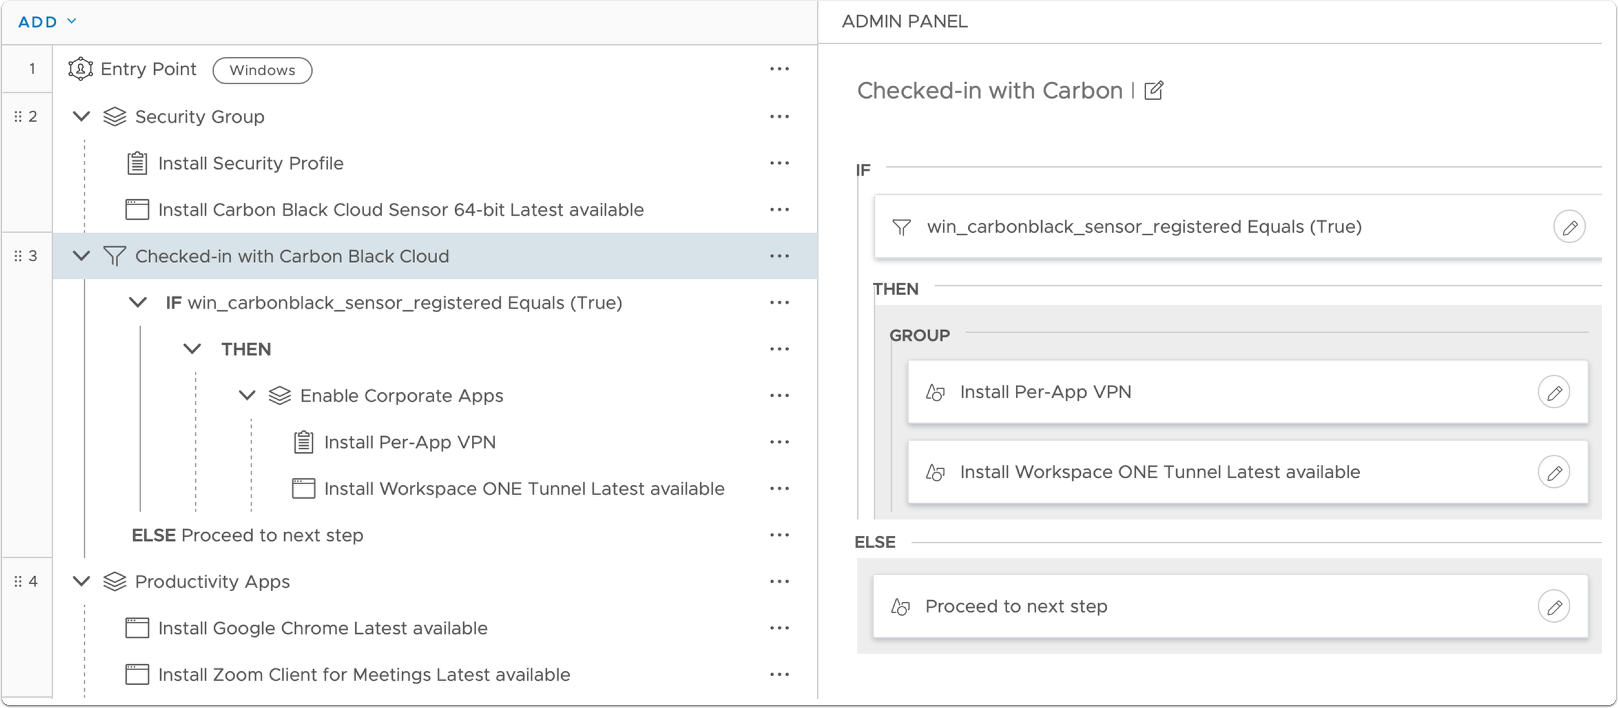 Confirm check-in with Carbon Black Cloud in Freestyle Orchestrator.